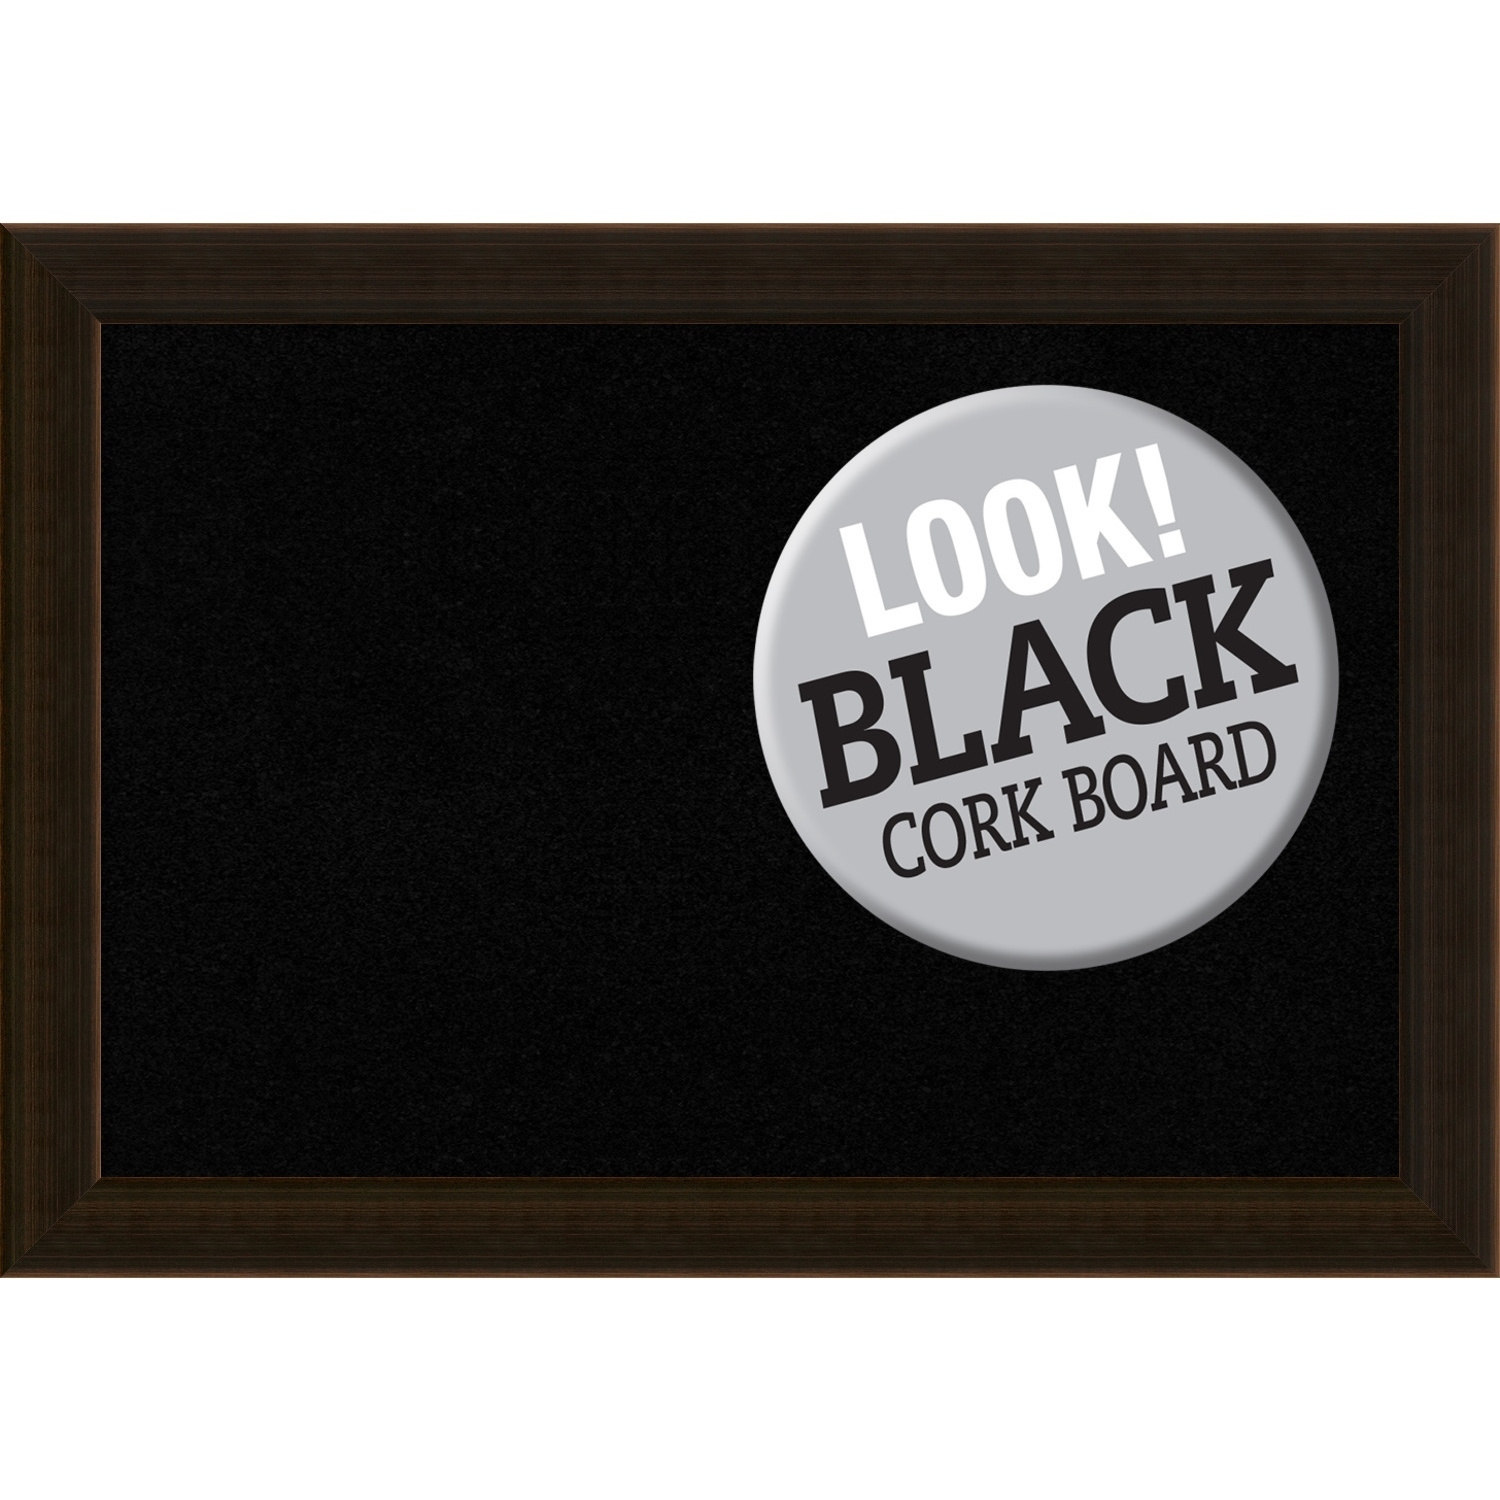 Amanti Art Framed Black Cork Board, Espresso Brown